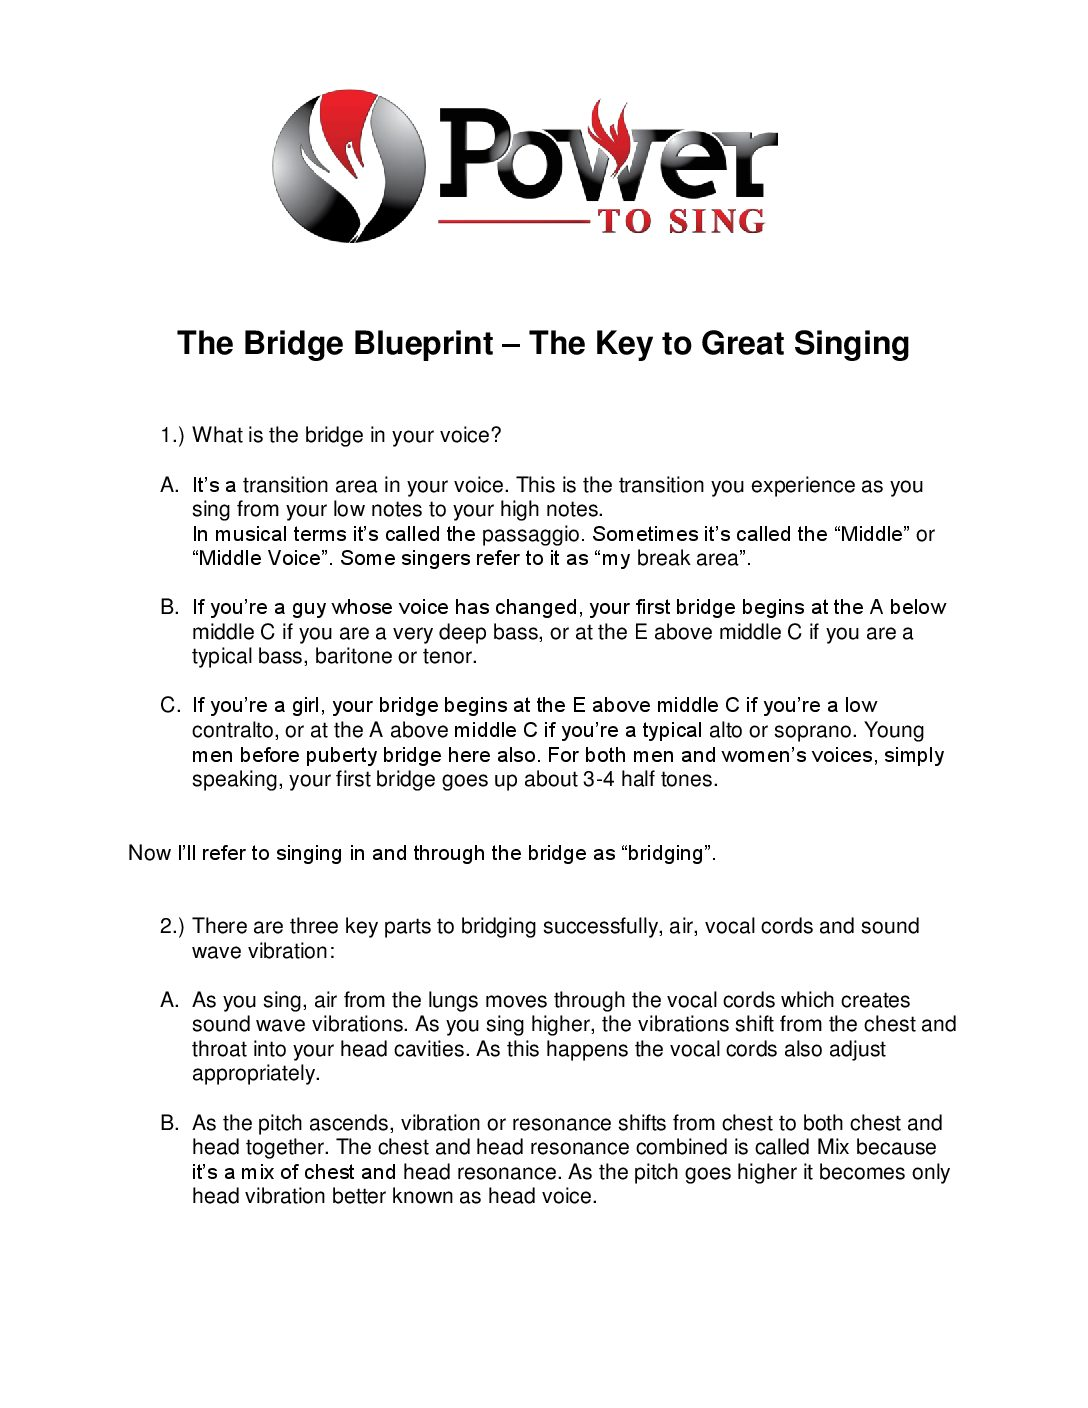 The Bridge Blueprint Video 1 PDF - Power To Sing